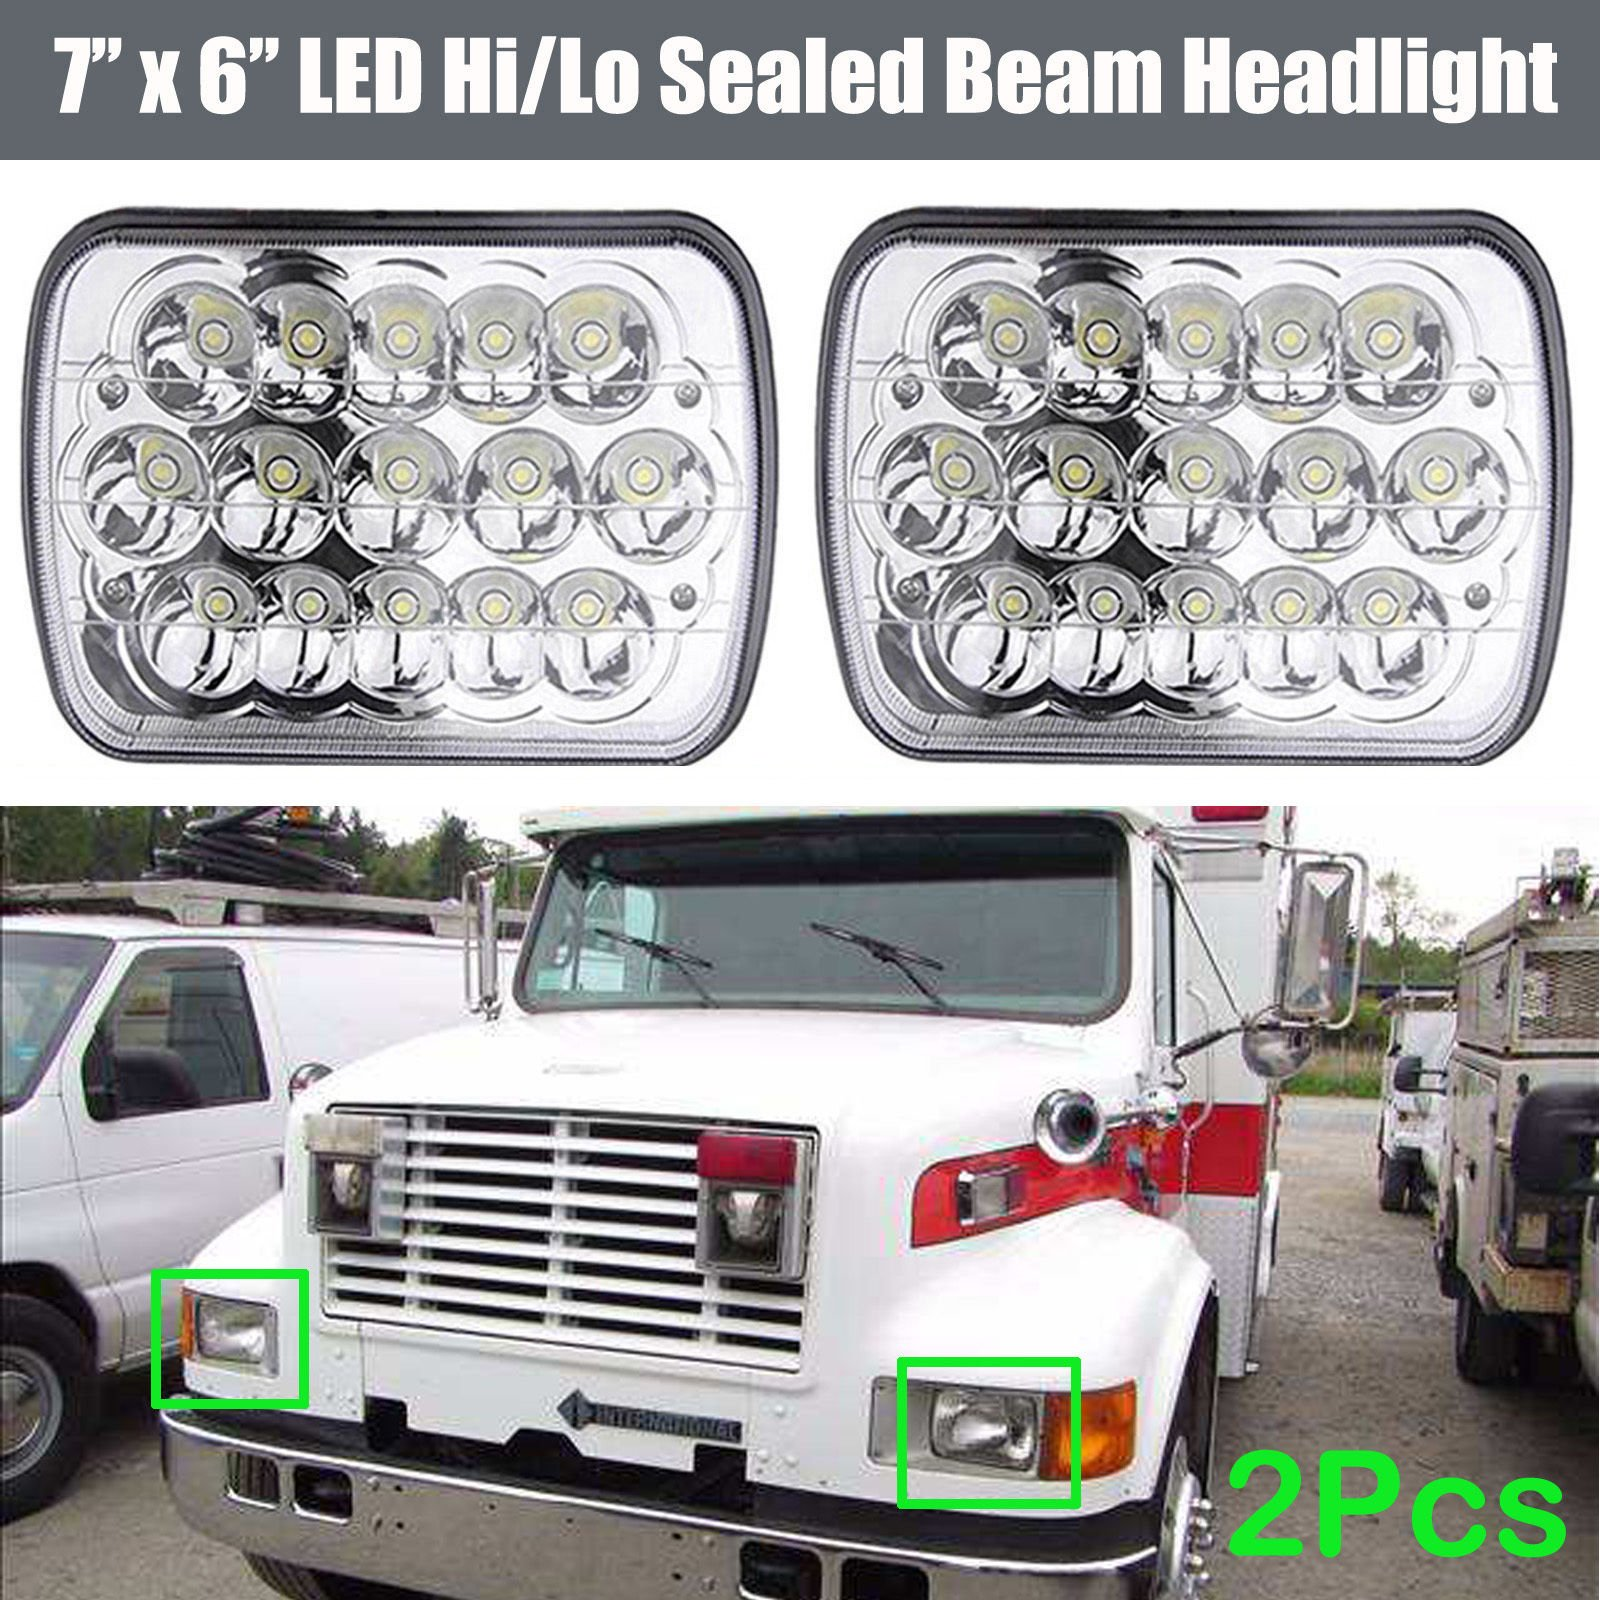 Pair H6014 / H6052 7'x6 5x7 LED Headlights for International Harvester 9200 9400 9900 4700 4800 4900 8100 3800 8200, Sealed Beam Super Bright Rectangular Head Lights Bulb Replacement